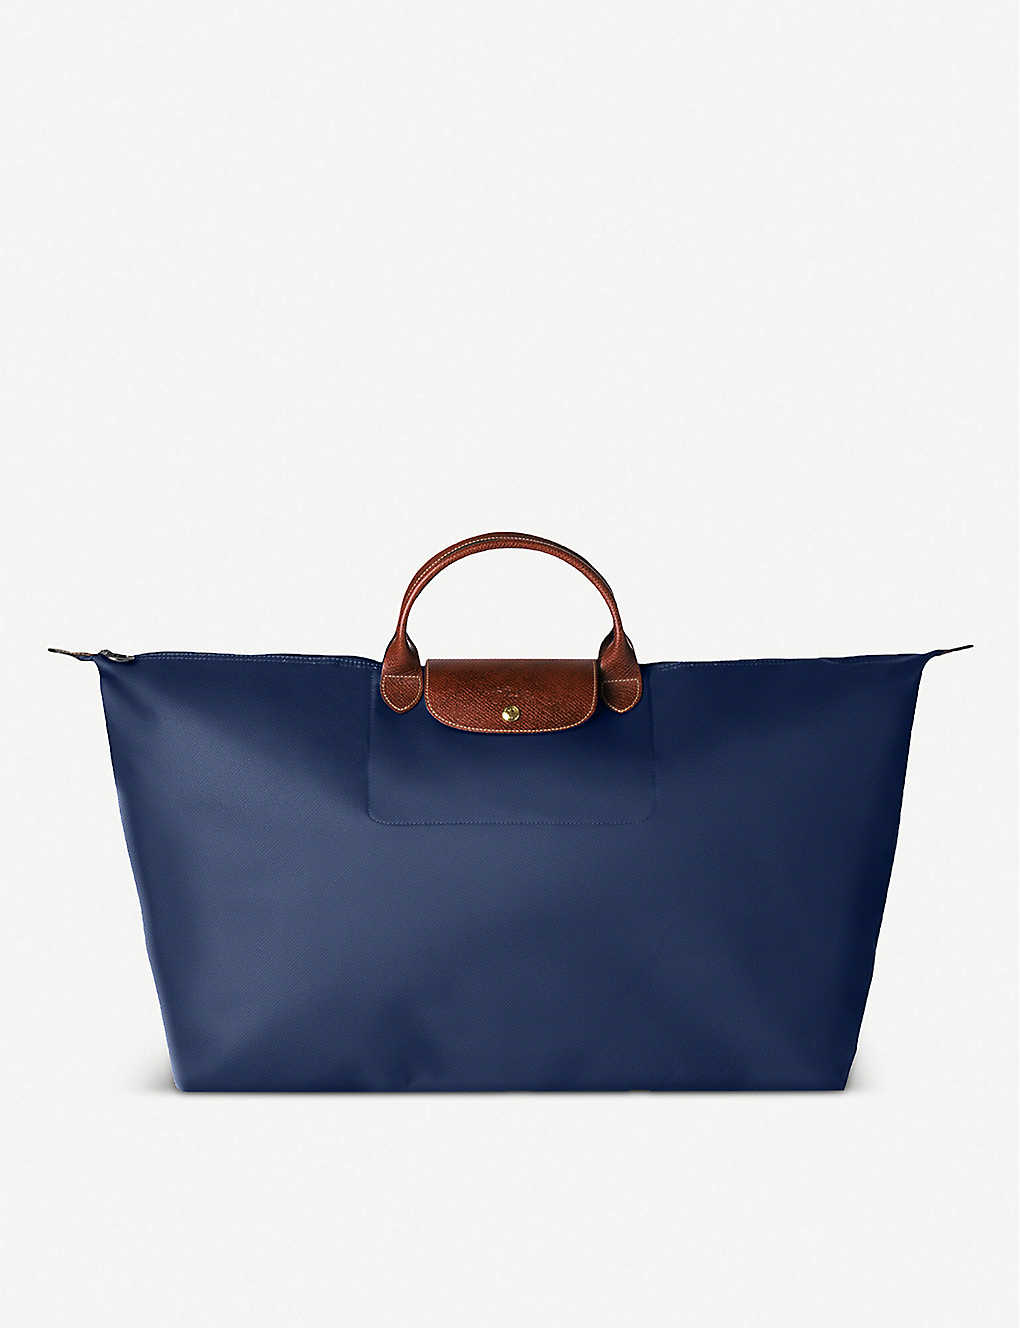 LONGCHAMP: Le Pliage large travel bag in navy